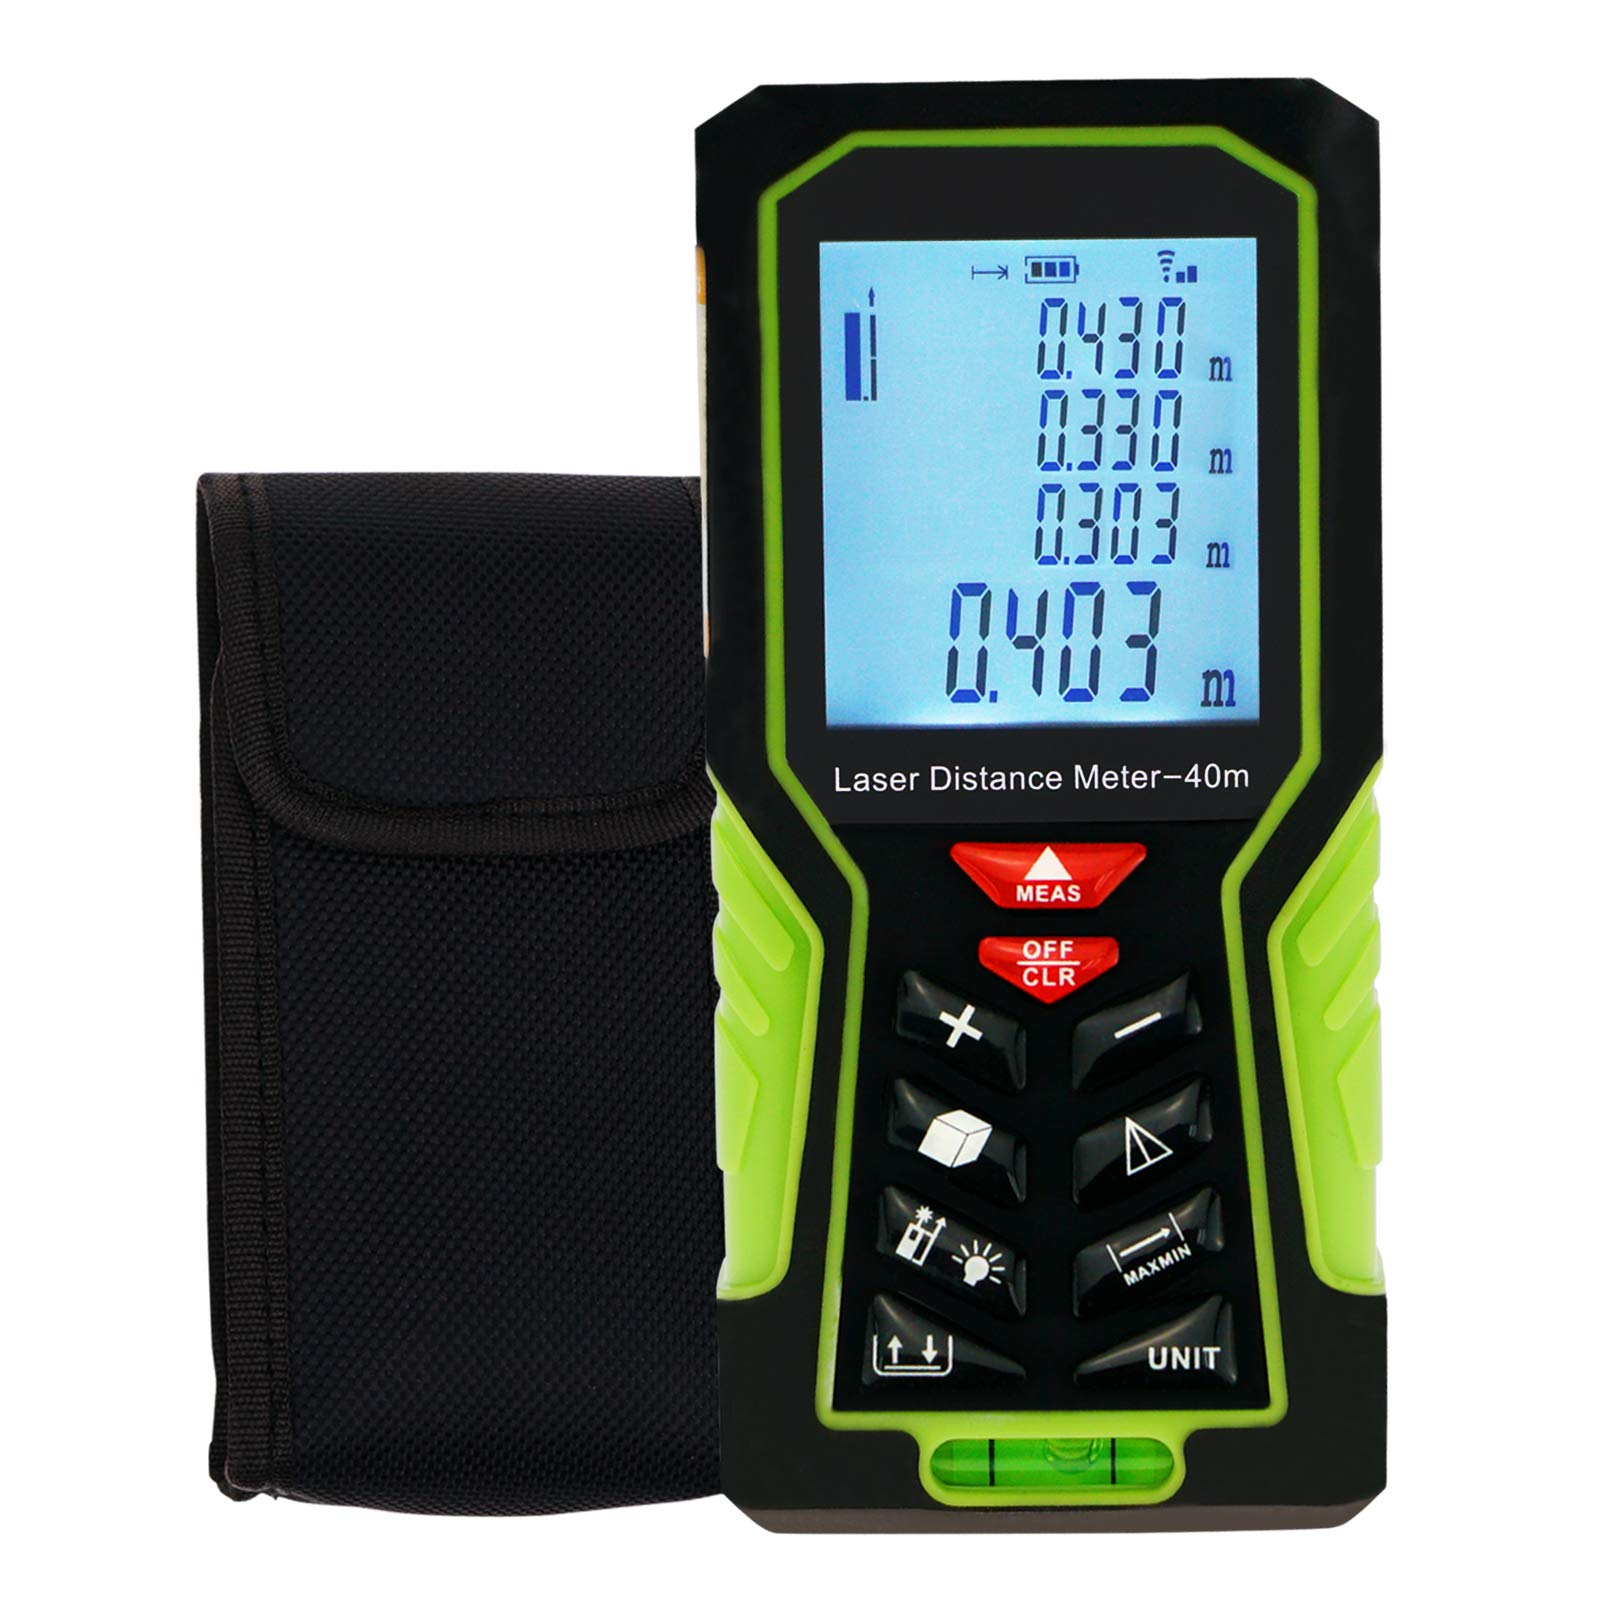 Portable Distance Meter with Max/Min Value Display 40m(131ft) Range finder Tester Measuring Area Volume, Data Storage